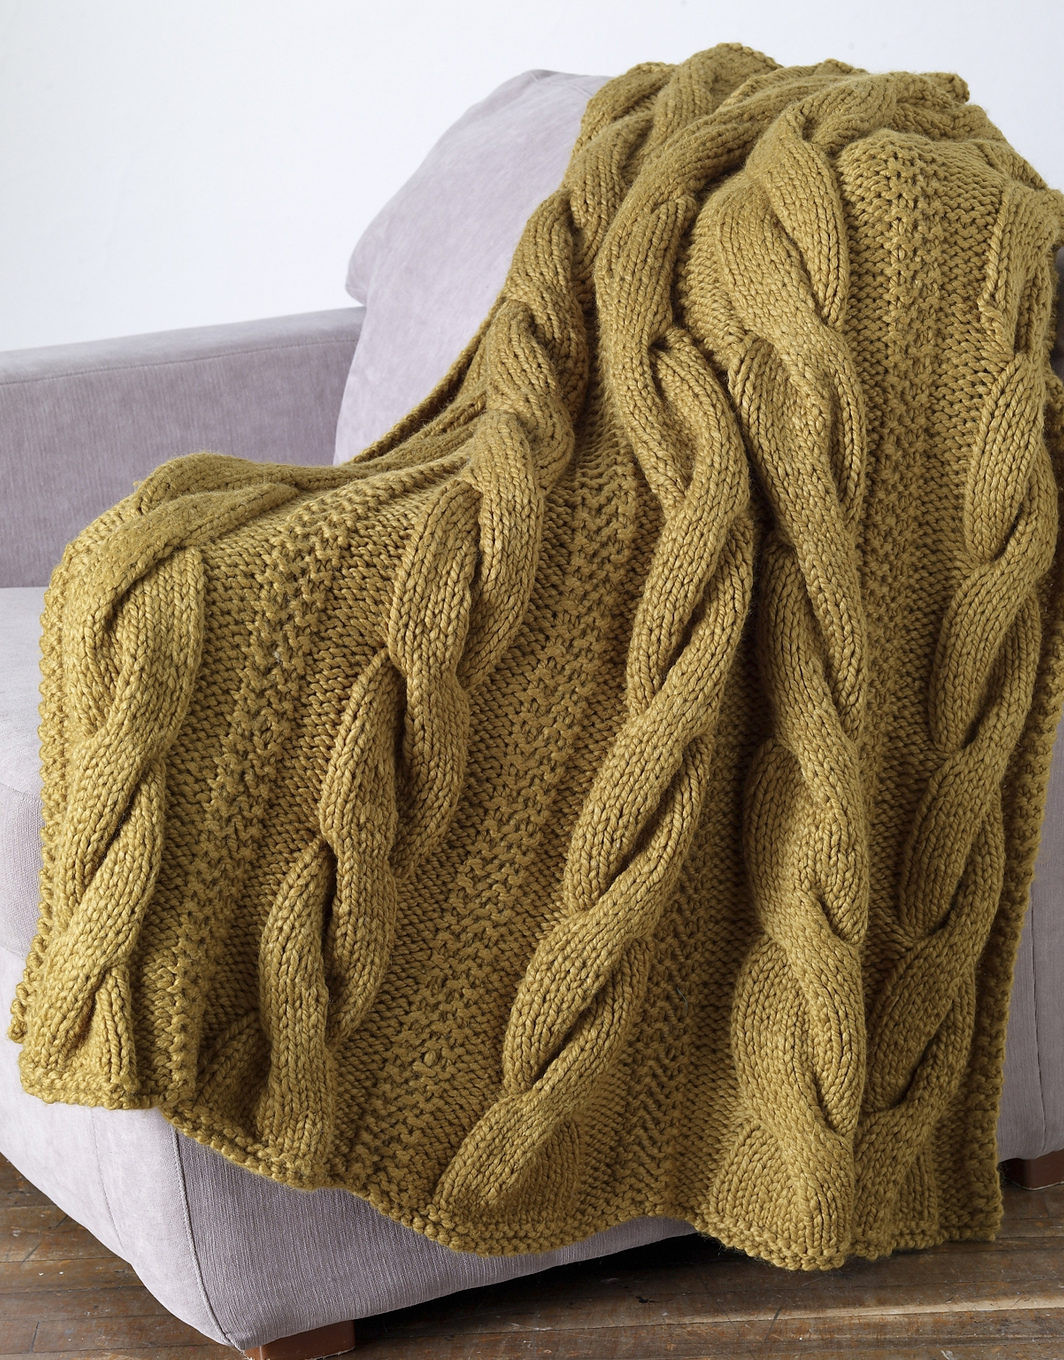 Knitted Afghan Patterns Luxury Afghans In Sections Knitting Patterns Of New 43 Photos Knitted Afghan Patterns